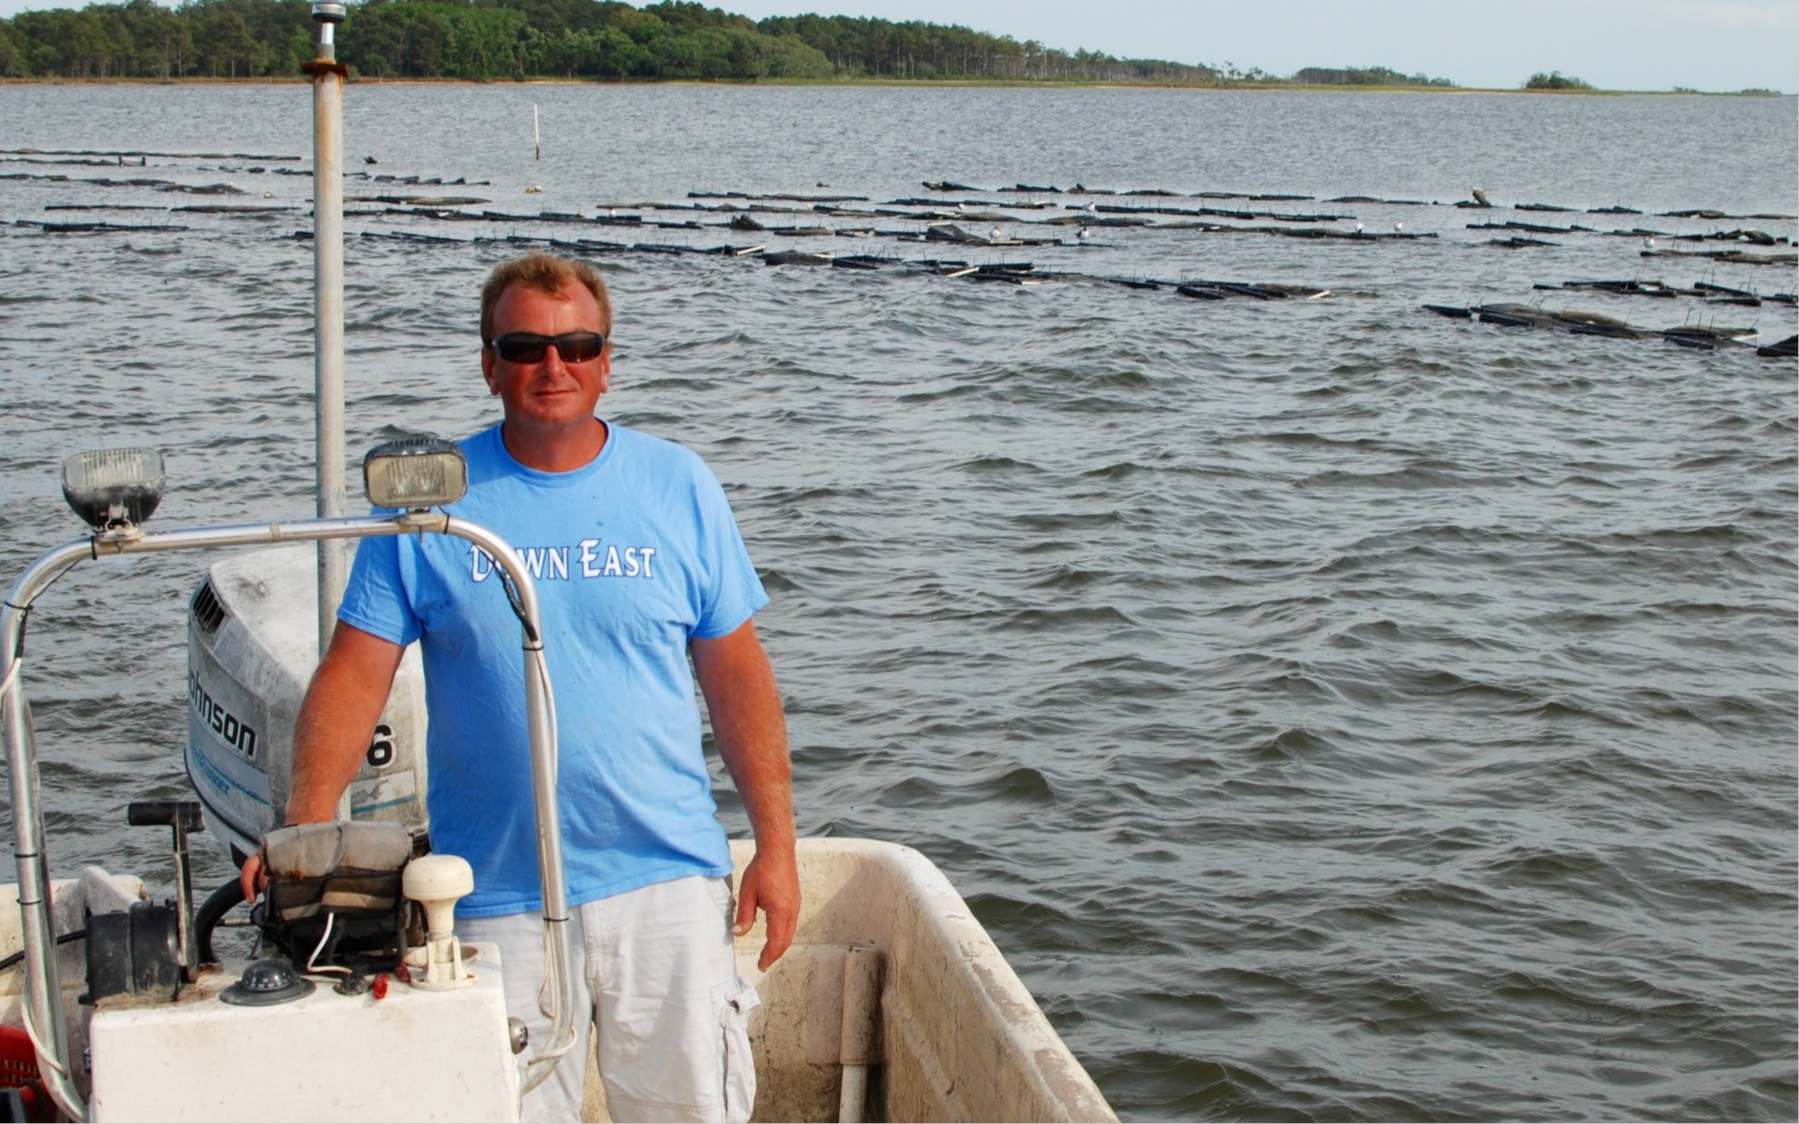 Adam Tyler, Oyster Farmer & Fisherman in North Carolina